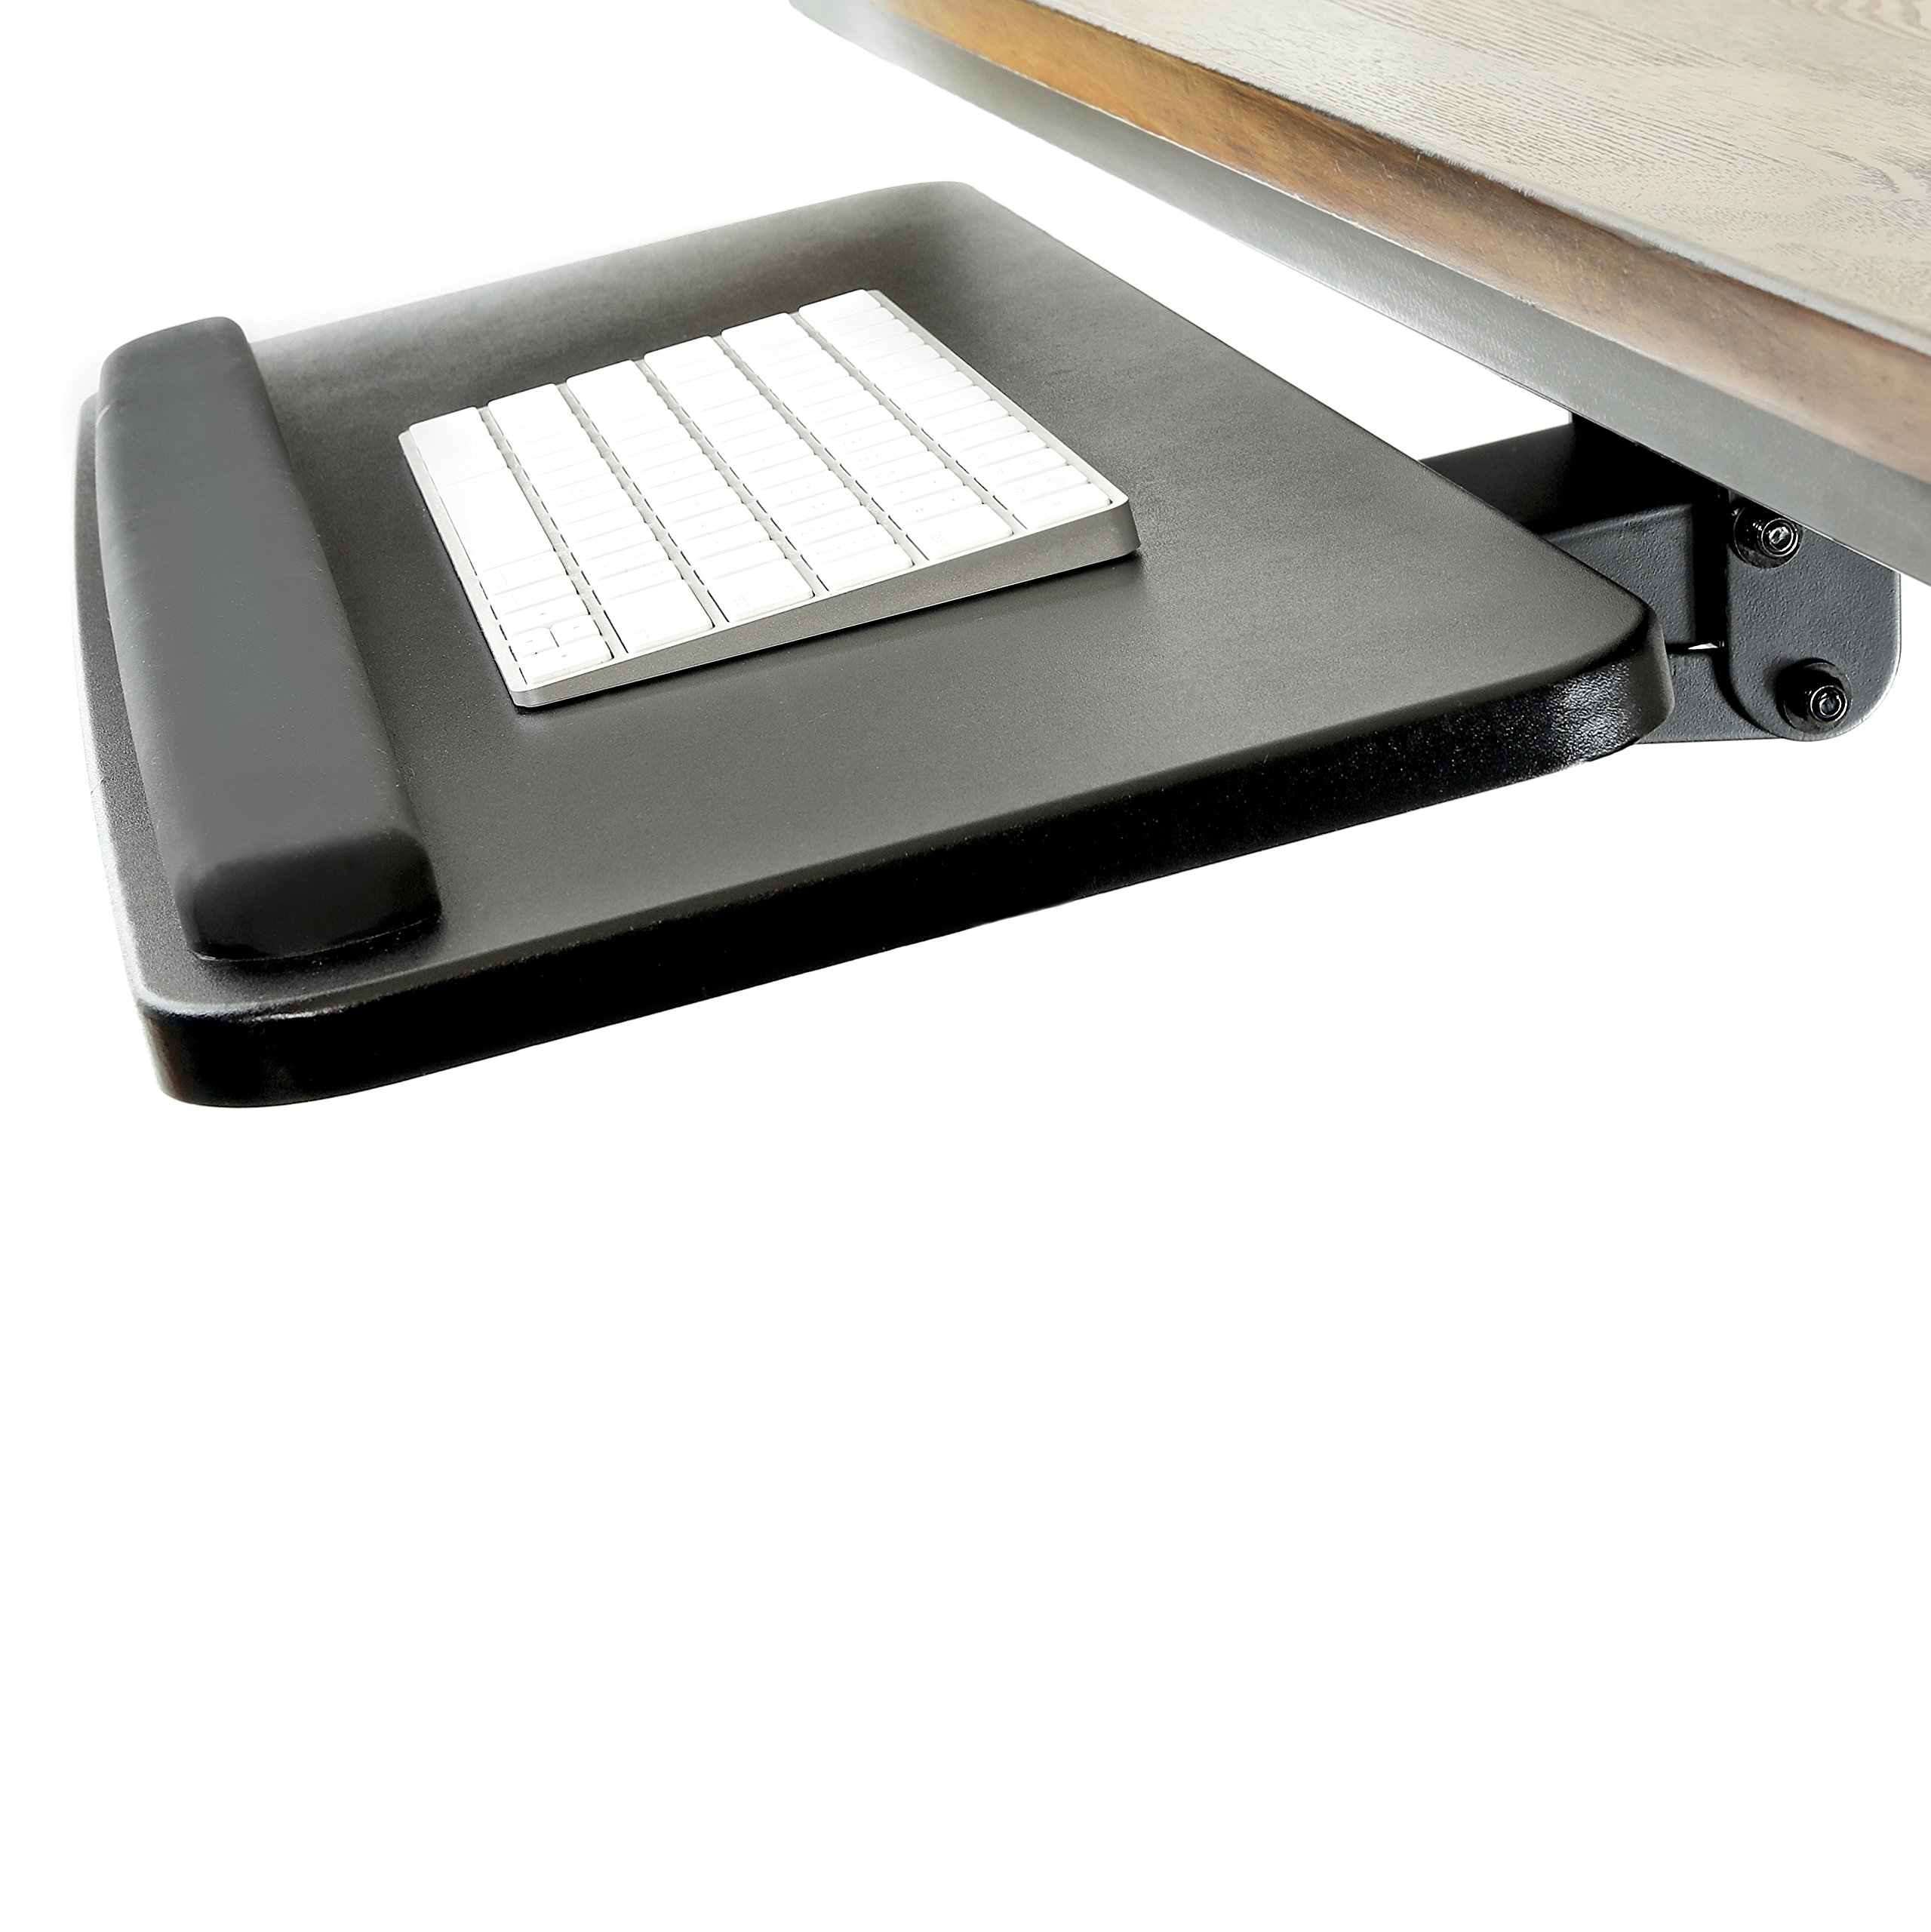 Easy Slide Keyboard Tray System with Adjustable Height and Angle - Comfortable Under Desk Computer Keyboard Platform Drawer with Padded Wrist Support